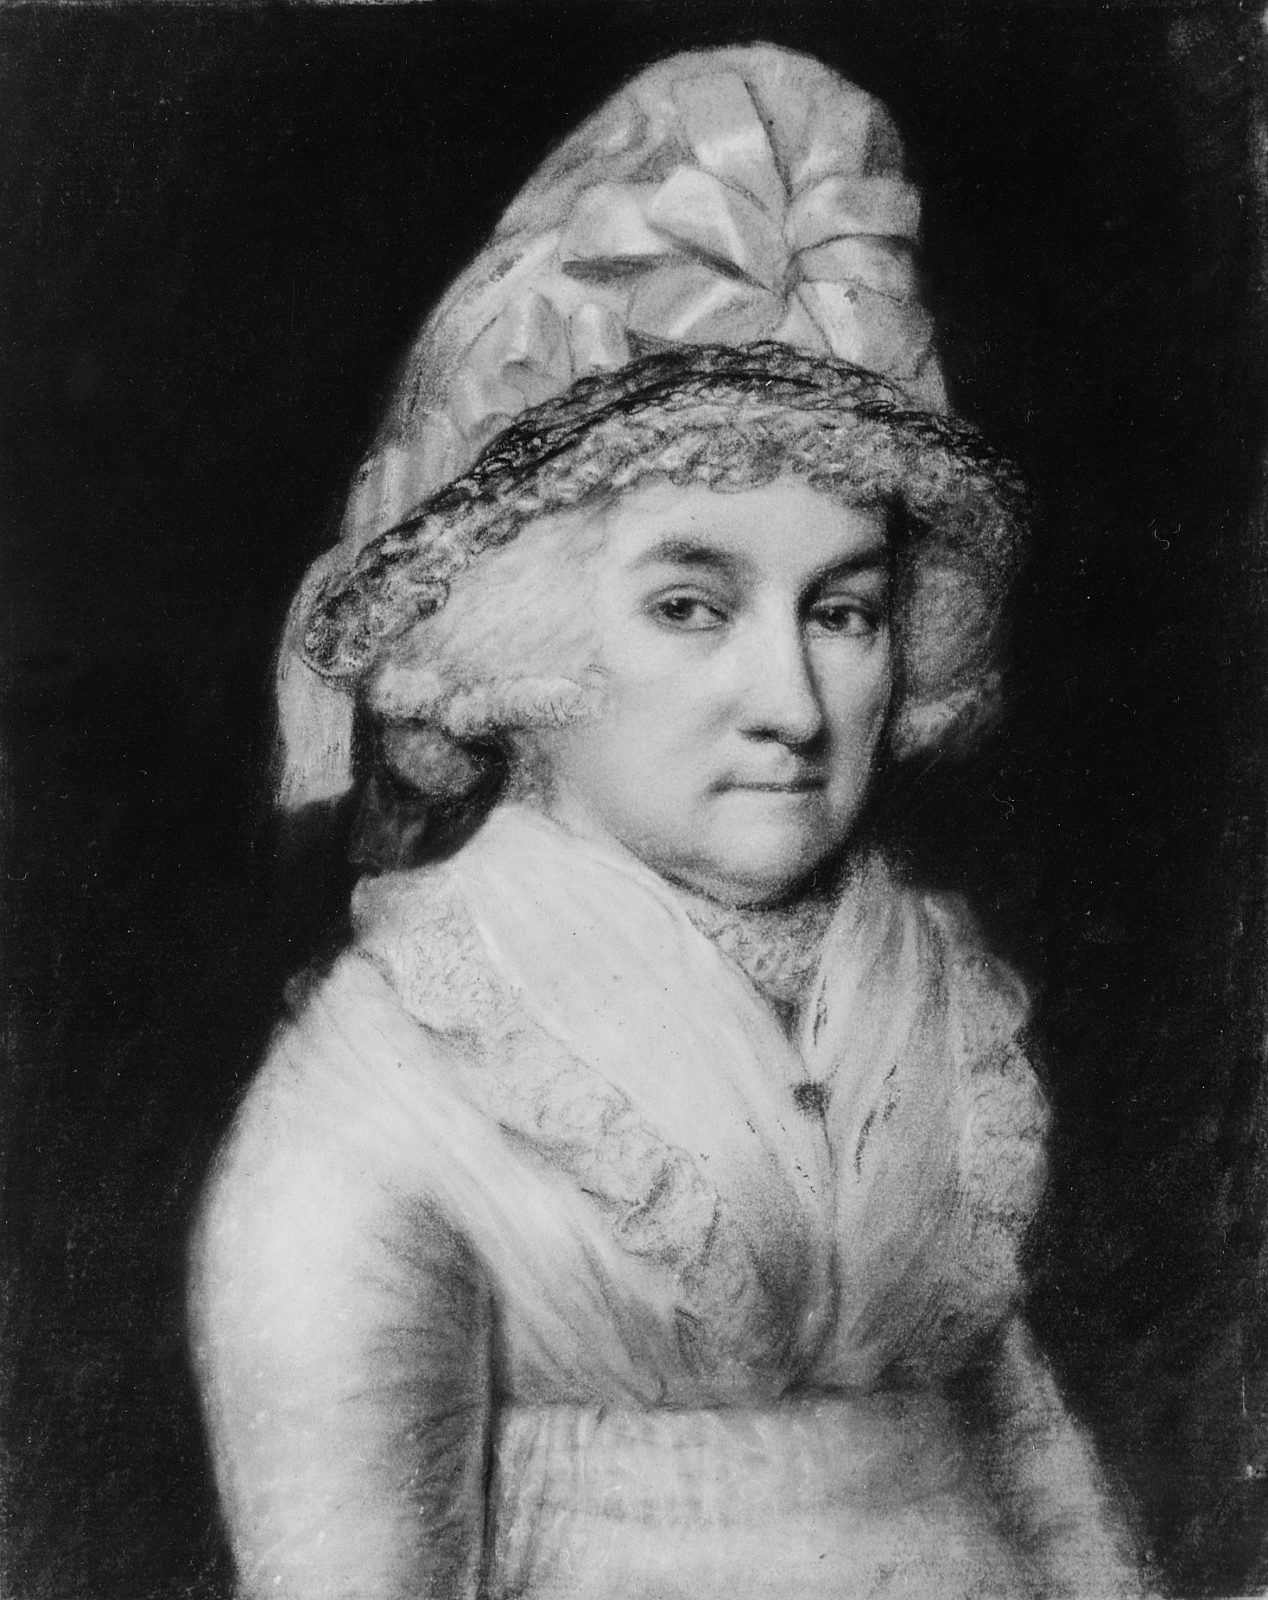 abigail smith adams is known as a Abigail smith adams was not a member of congress she did not participate in a convention she did not sign any historic documents she was the wife of our second president john adams, and mother of our sixth president john quincy adams.